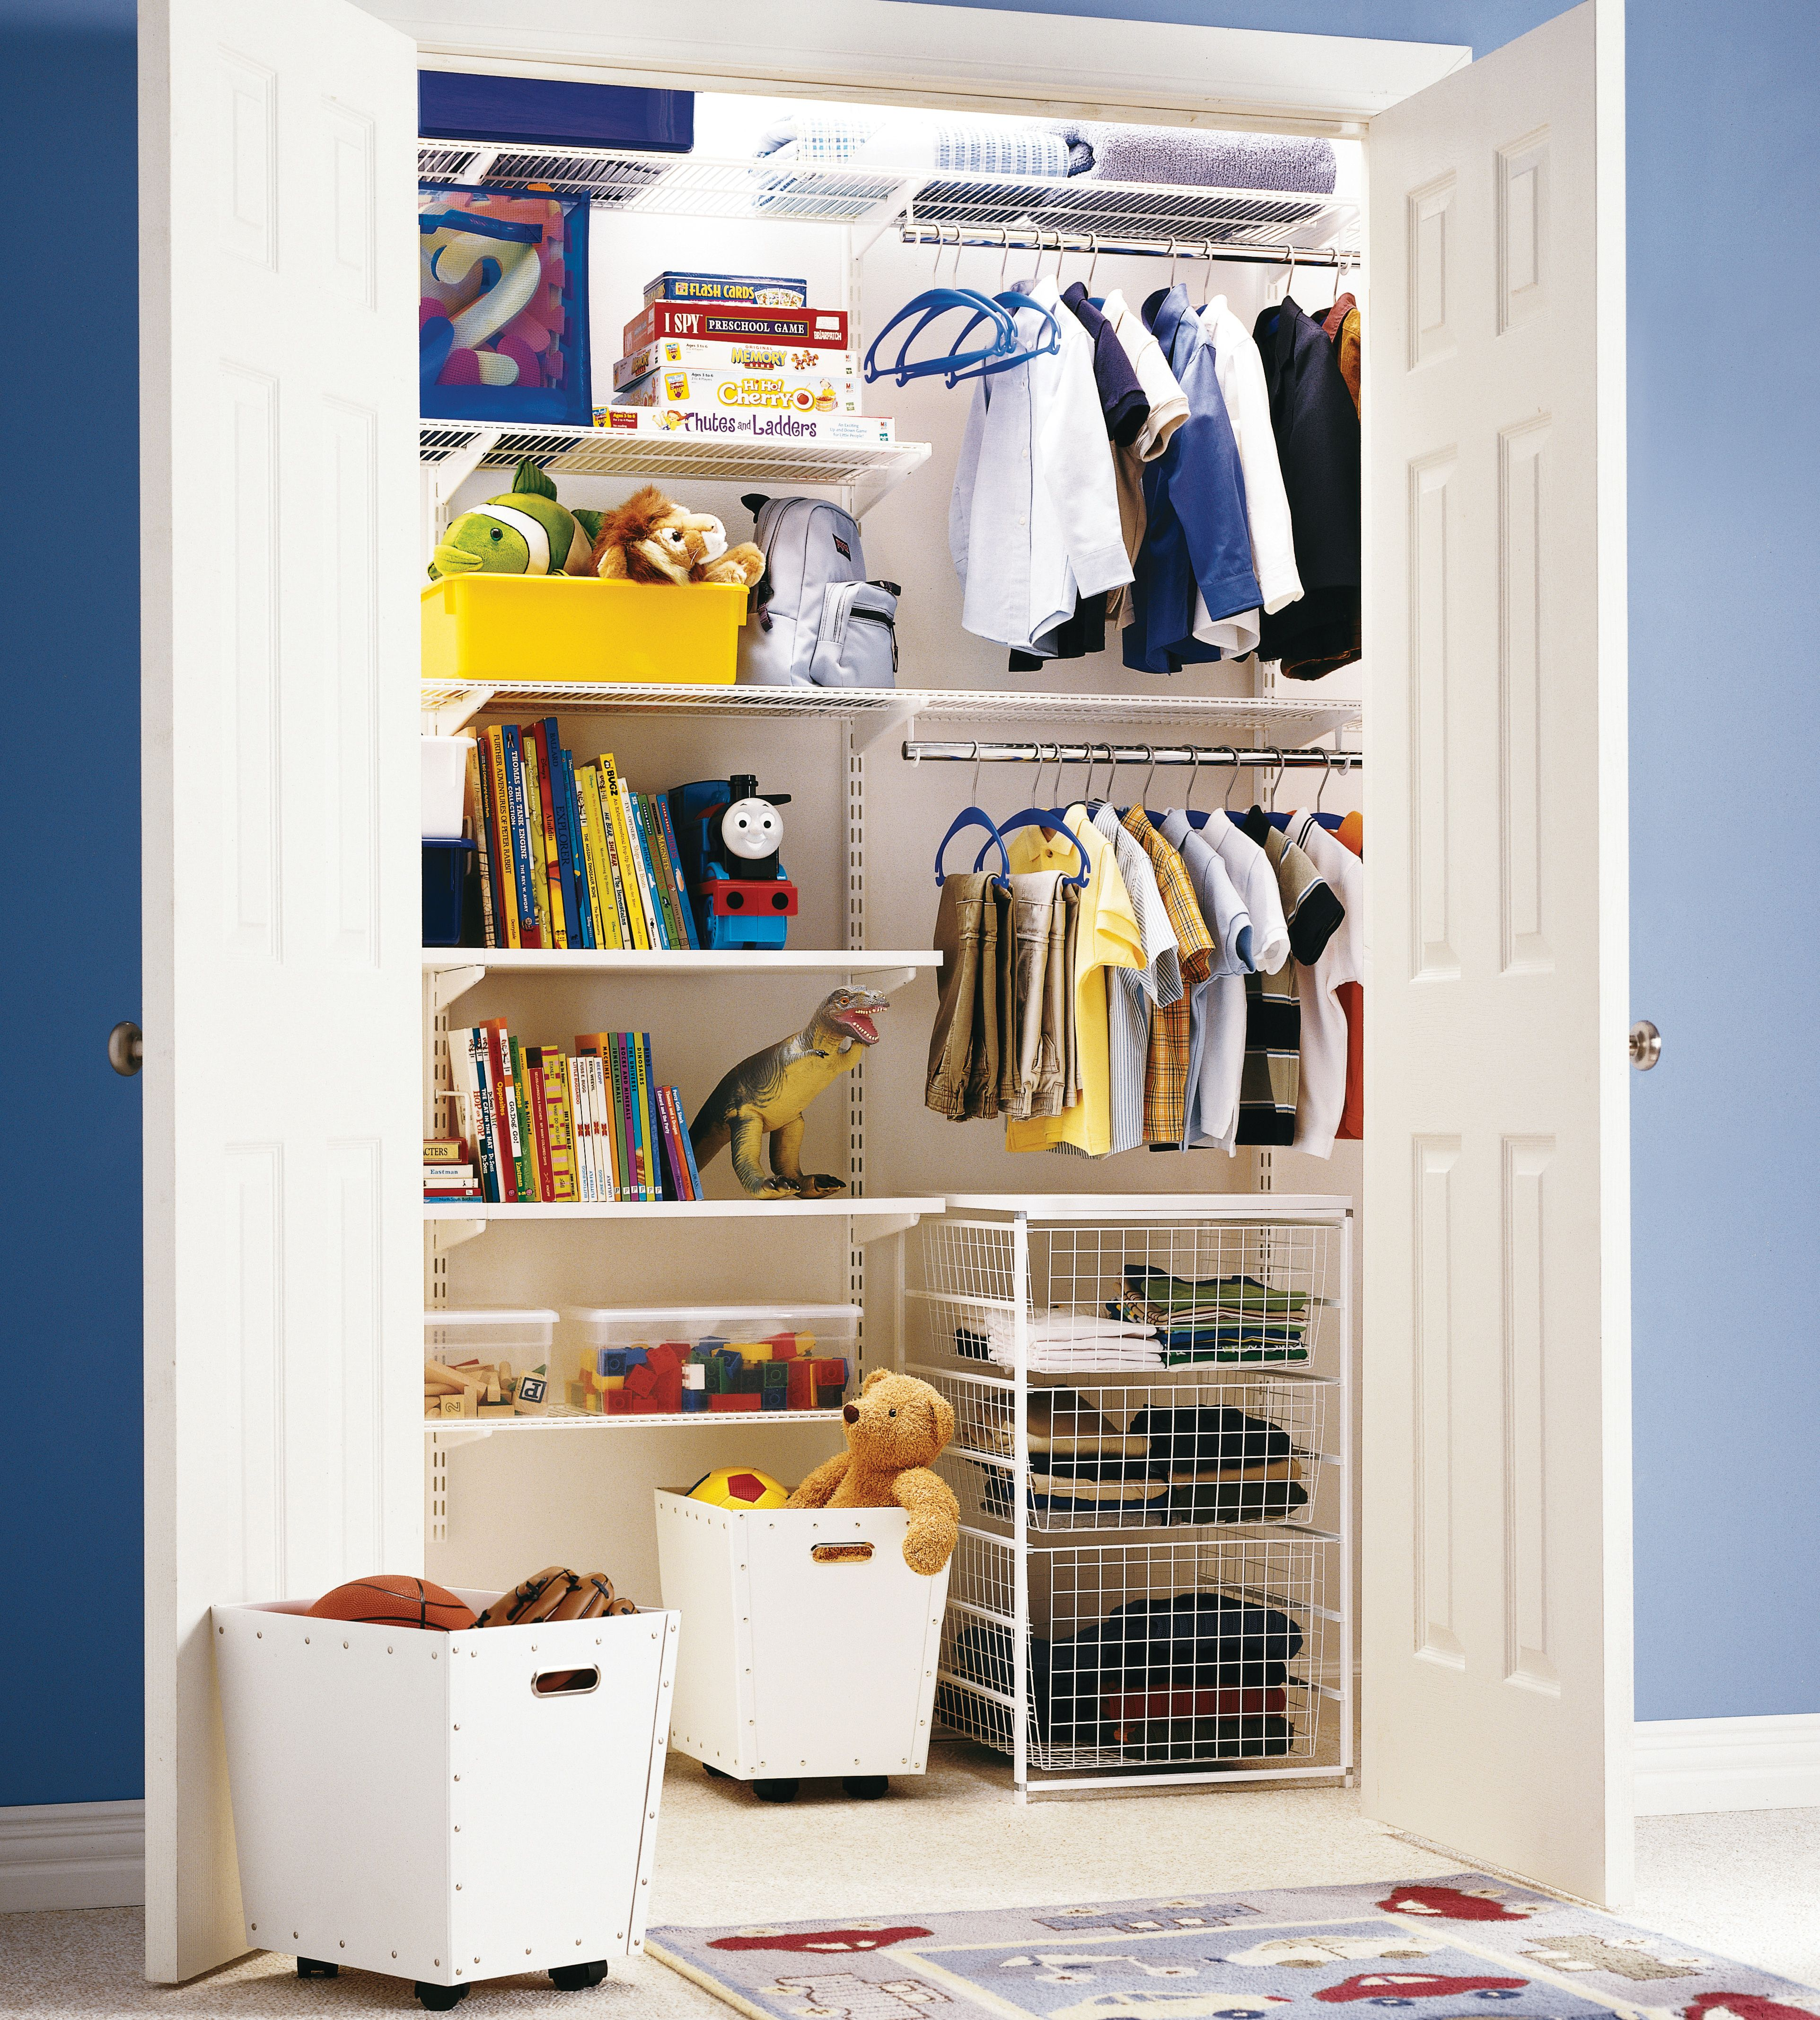 The Container Store U003e White Elfa Kidsu0027 Reach In Closet  Like It, But I  Would Want Two Sets Of Drawers On Floor